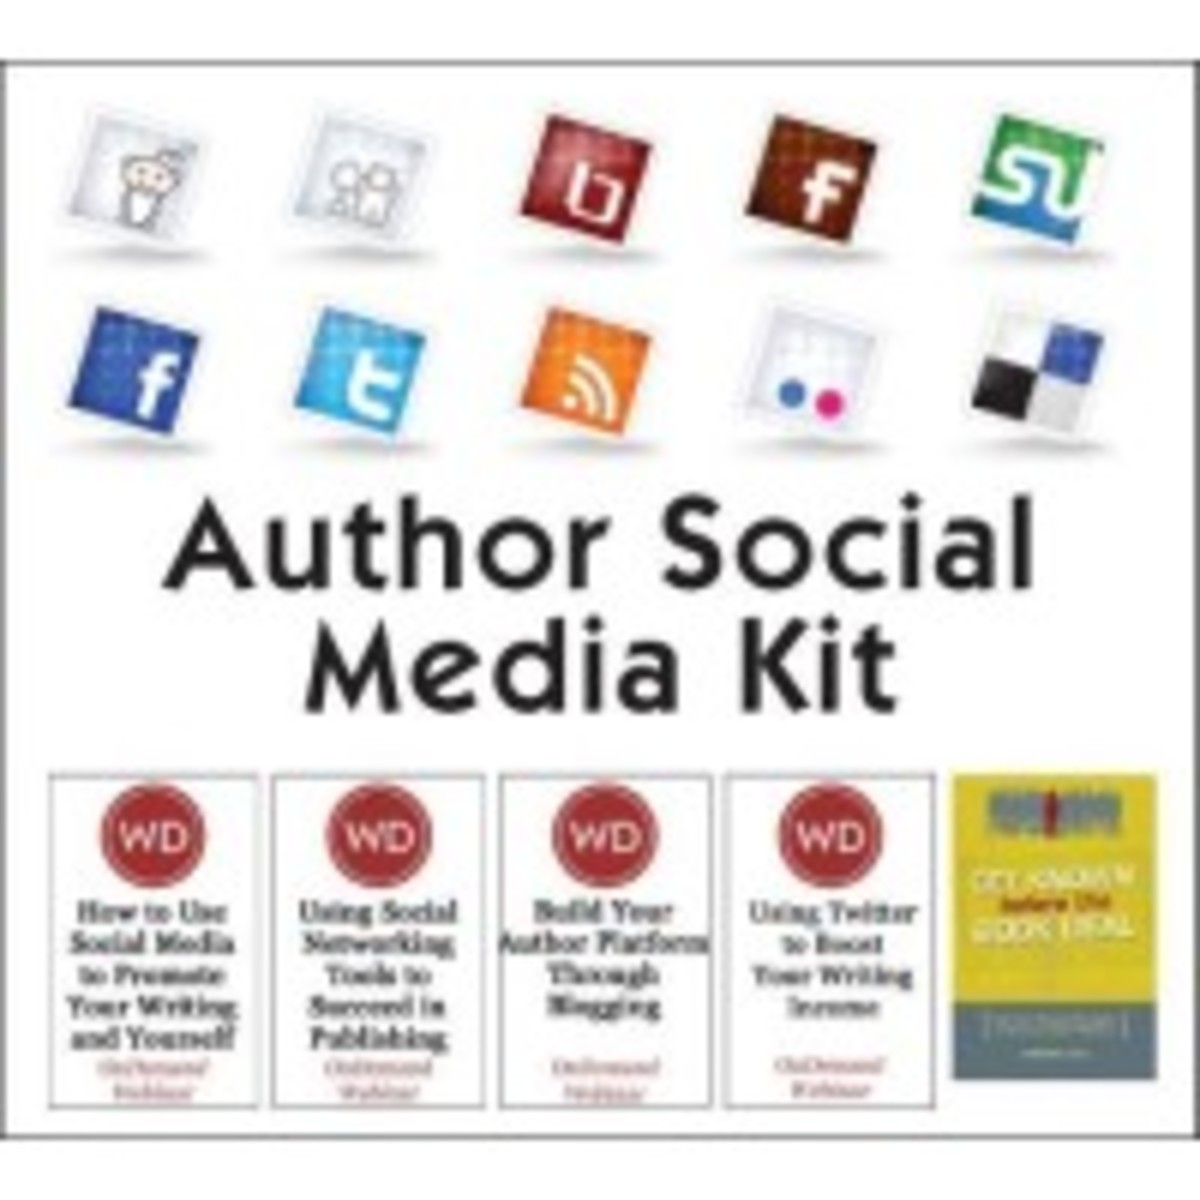 Author Social Media kit